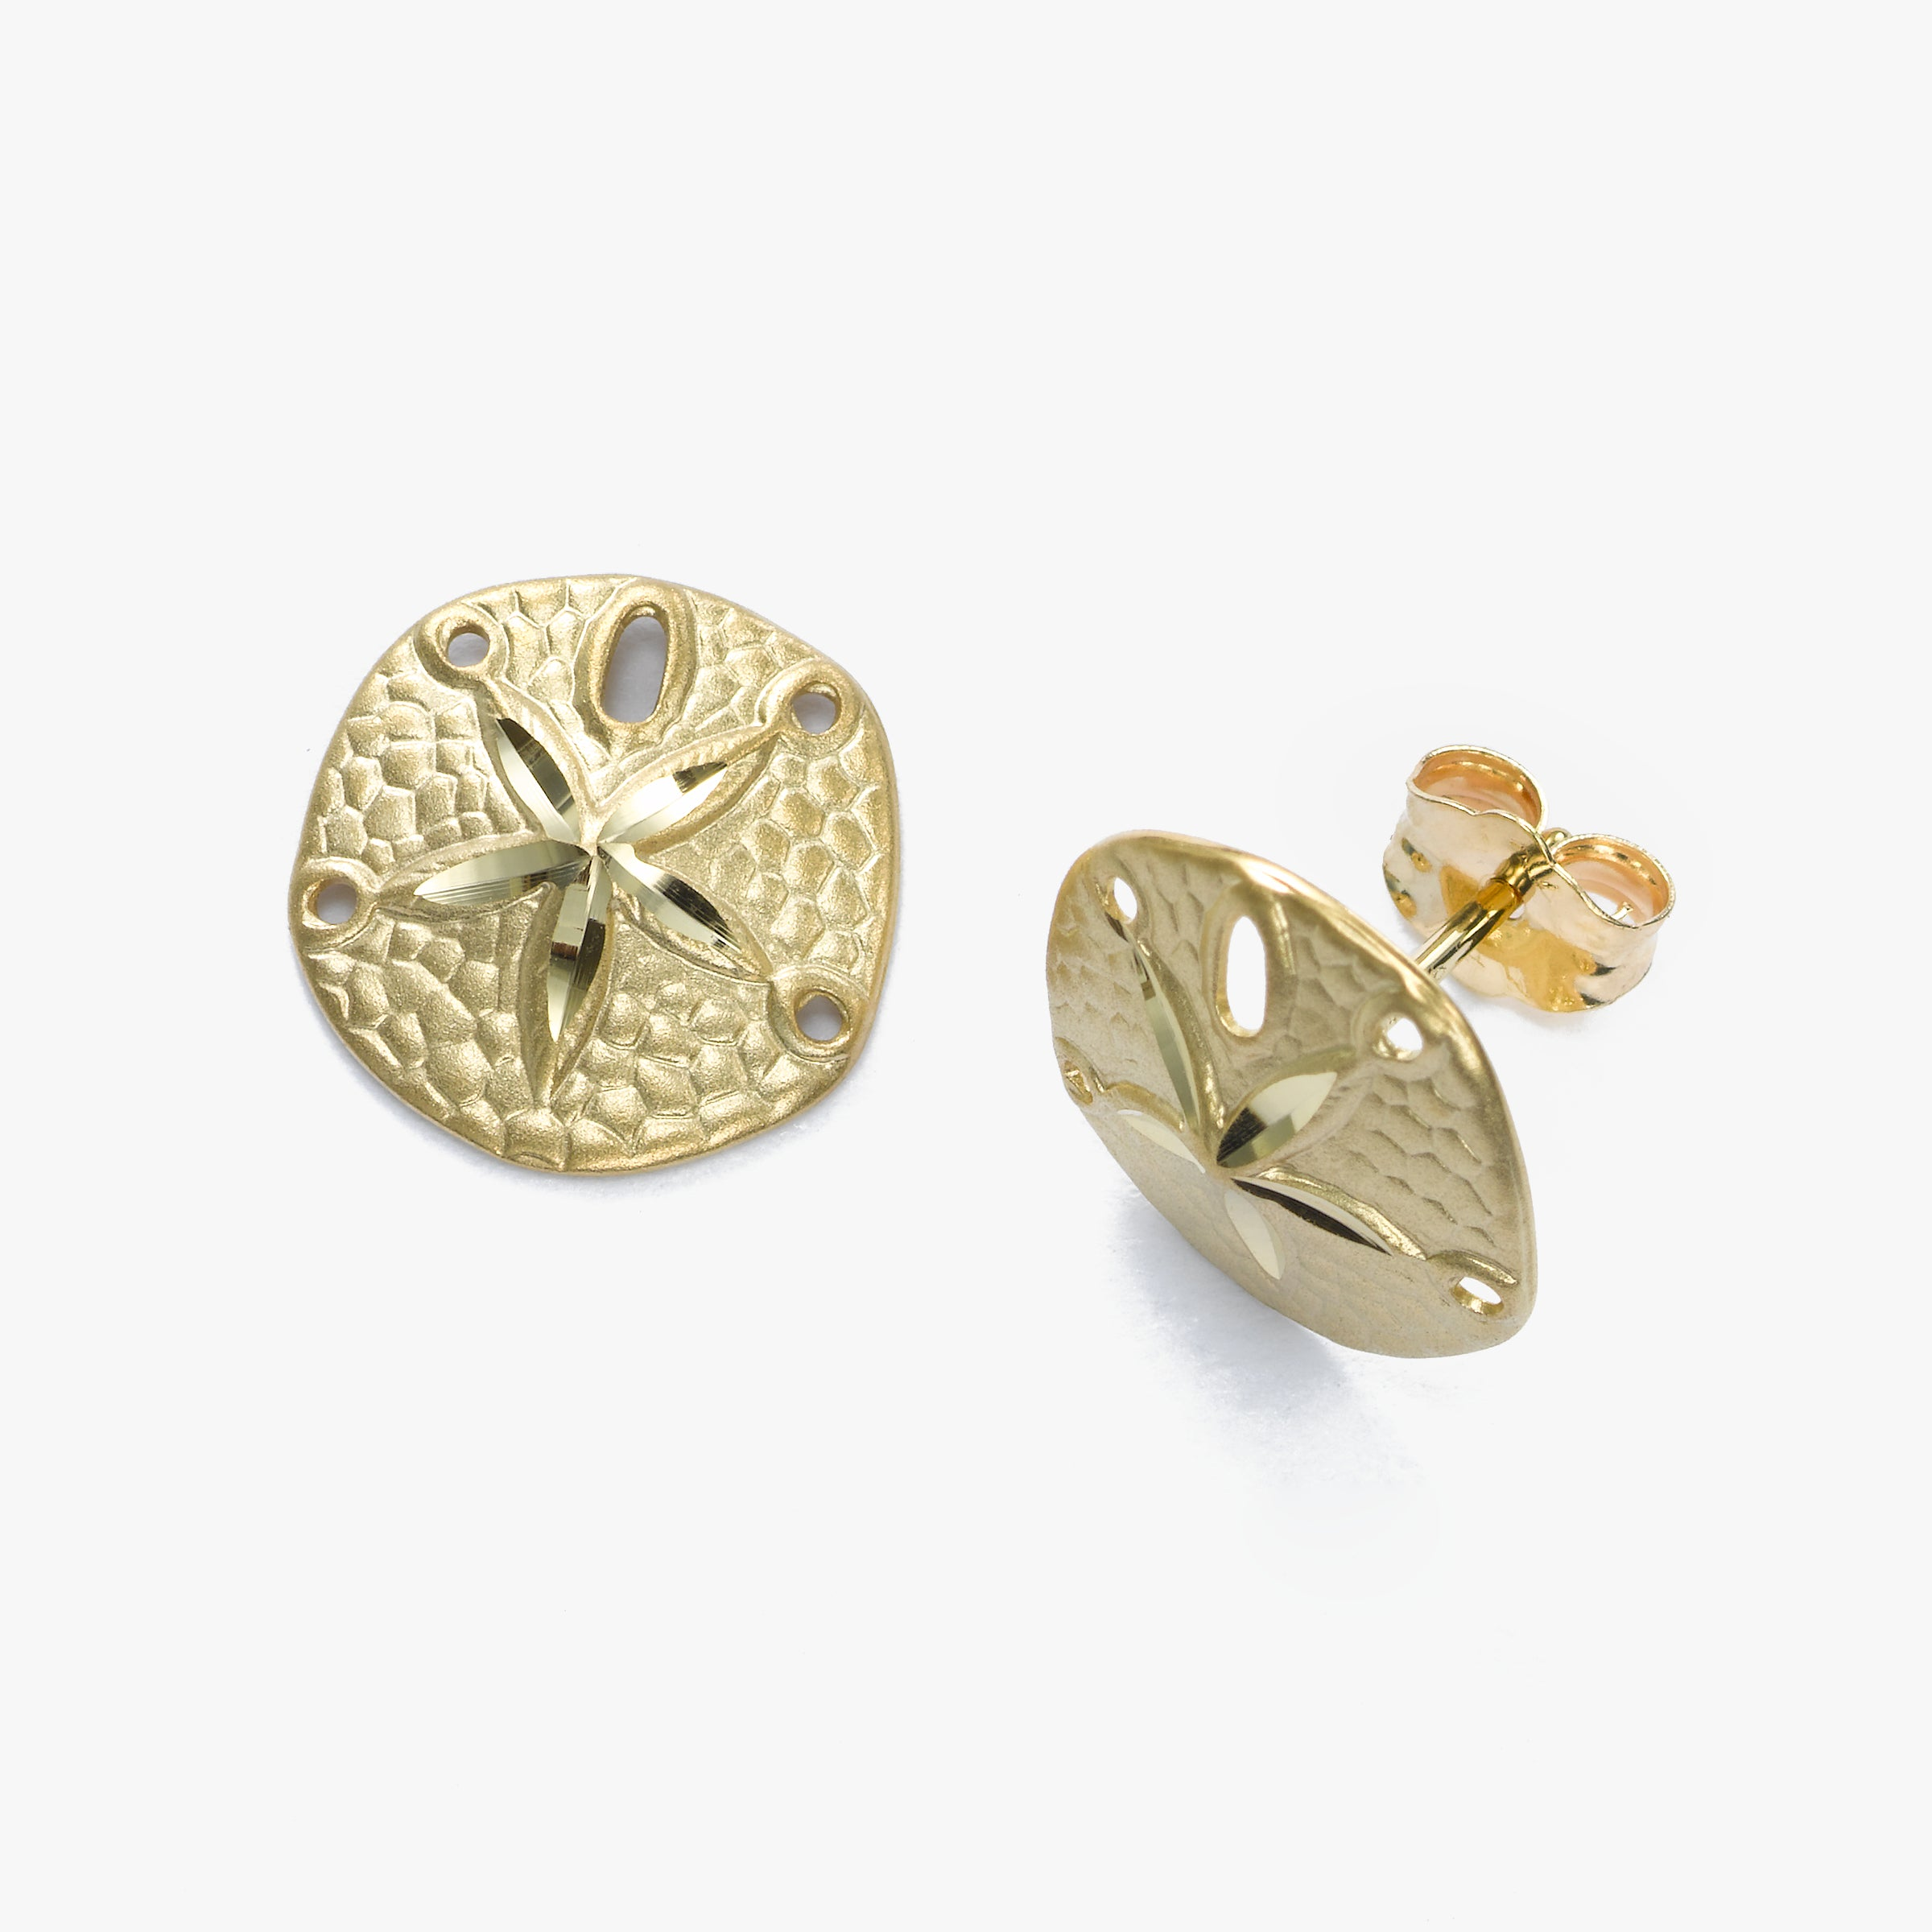 Sand Dollar Button Earrings, 14K Yellow Gold